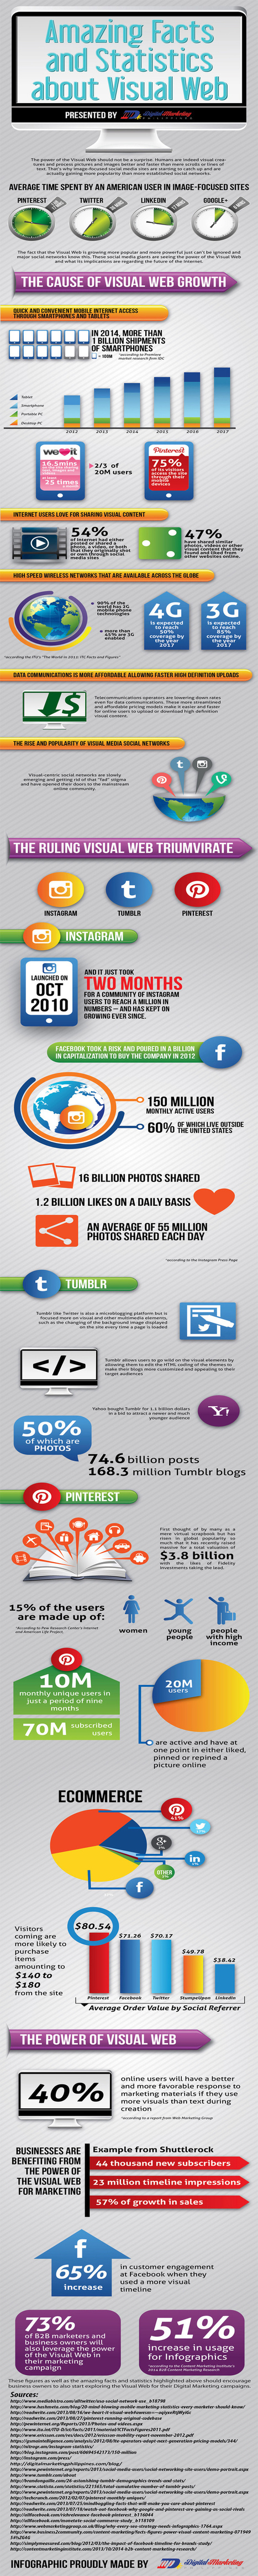 Amazing Facts and Statistics about Visual Web (Infographic) - Business 2 Community | Business Industry Infographics | Scoop.it